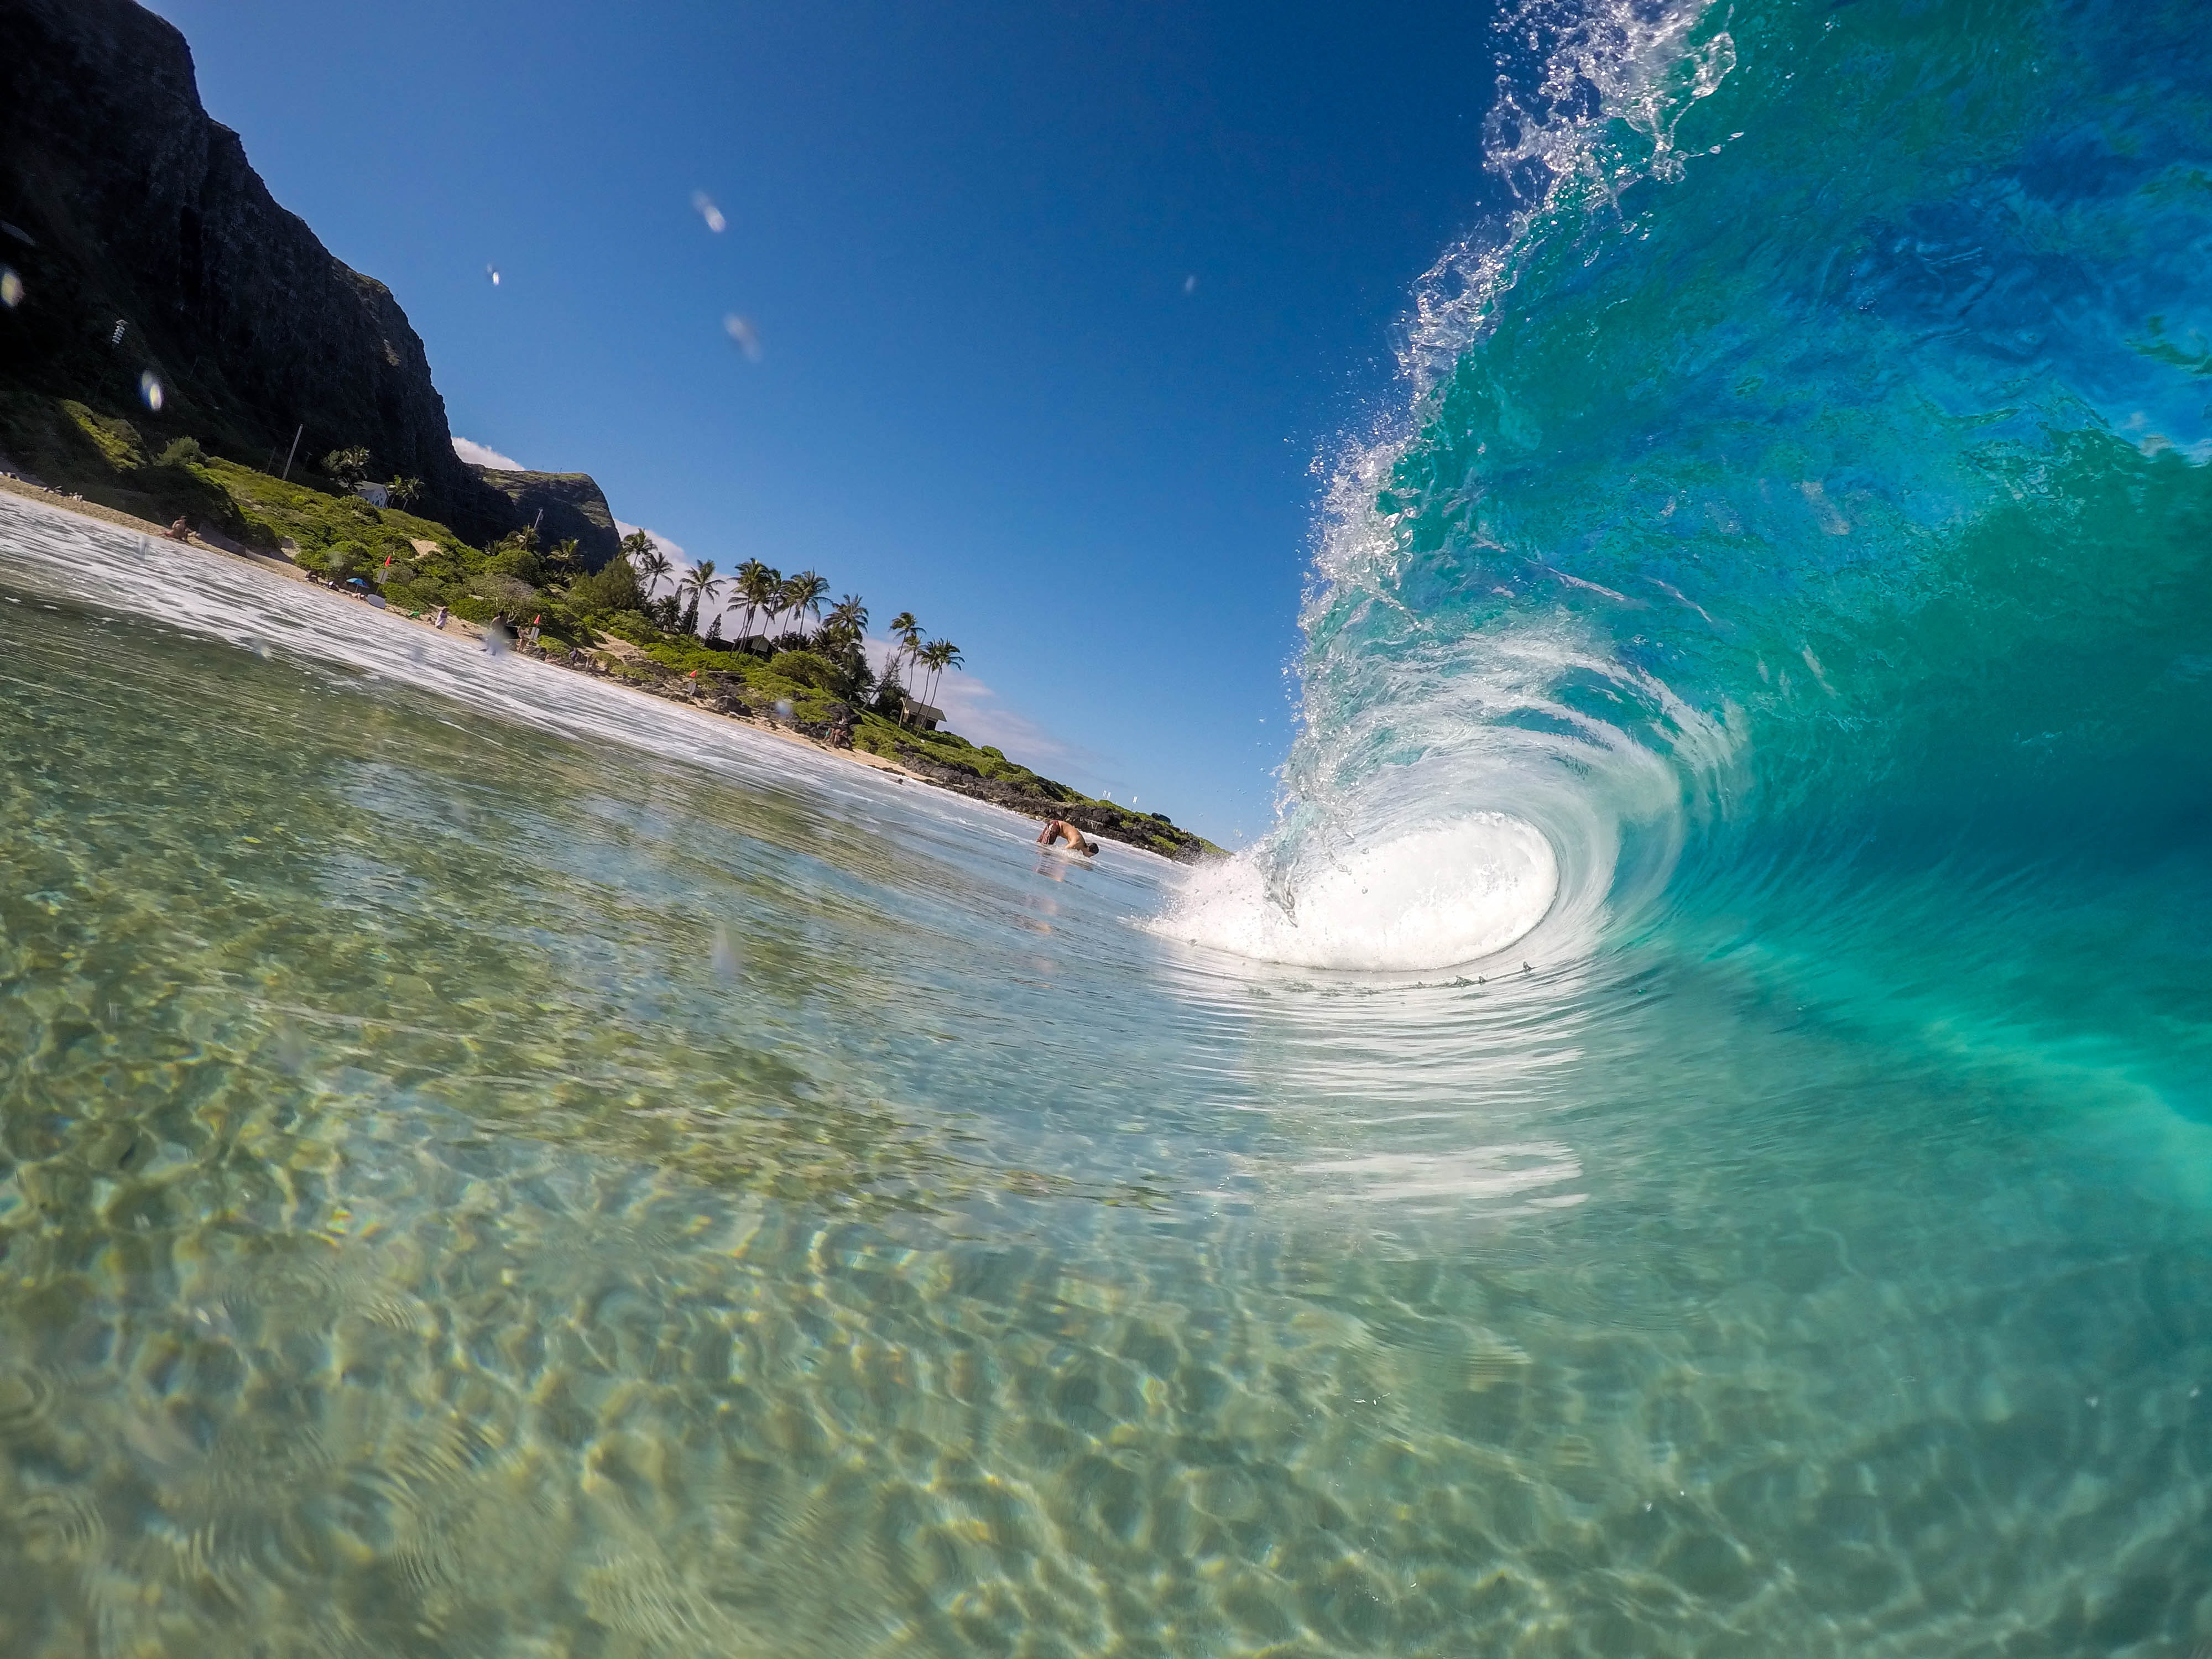 A transparent wave coming in near the shore.